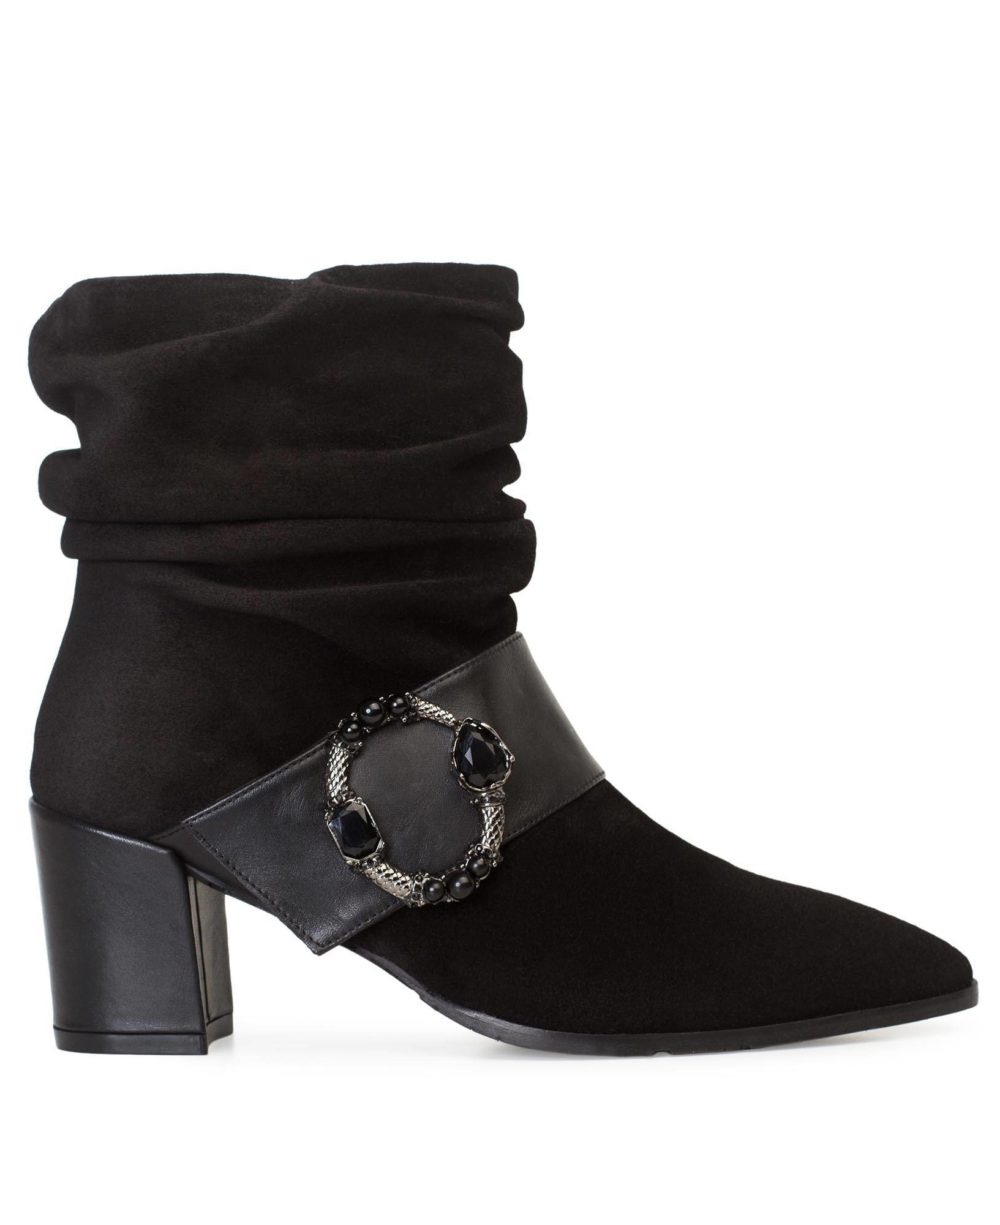 Leather ankle boots  Paco Gil - P-3841 Black Velour-Bravo P